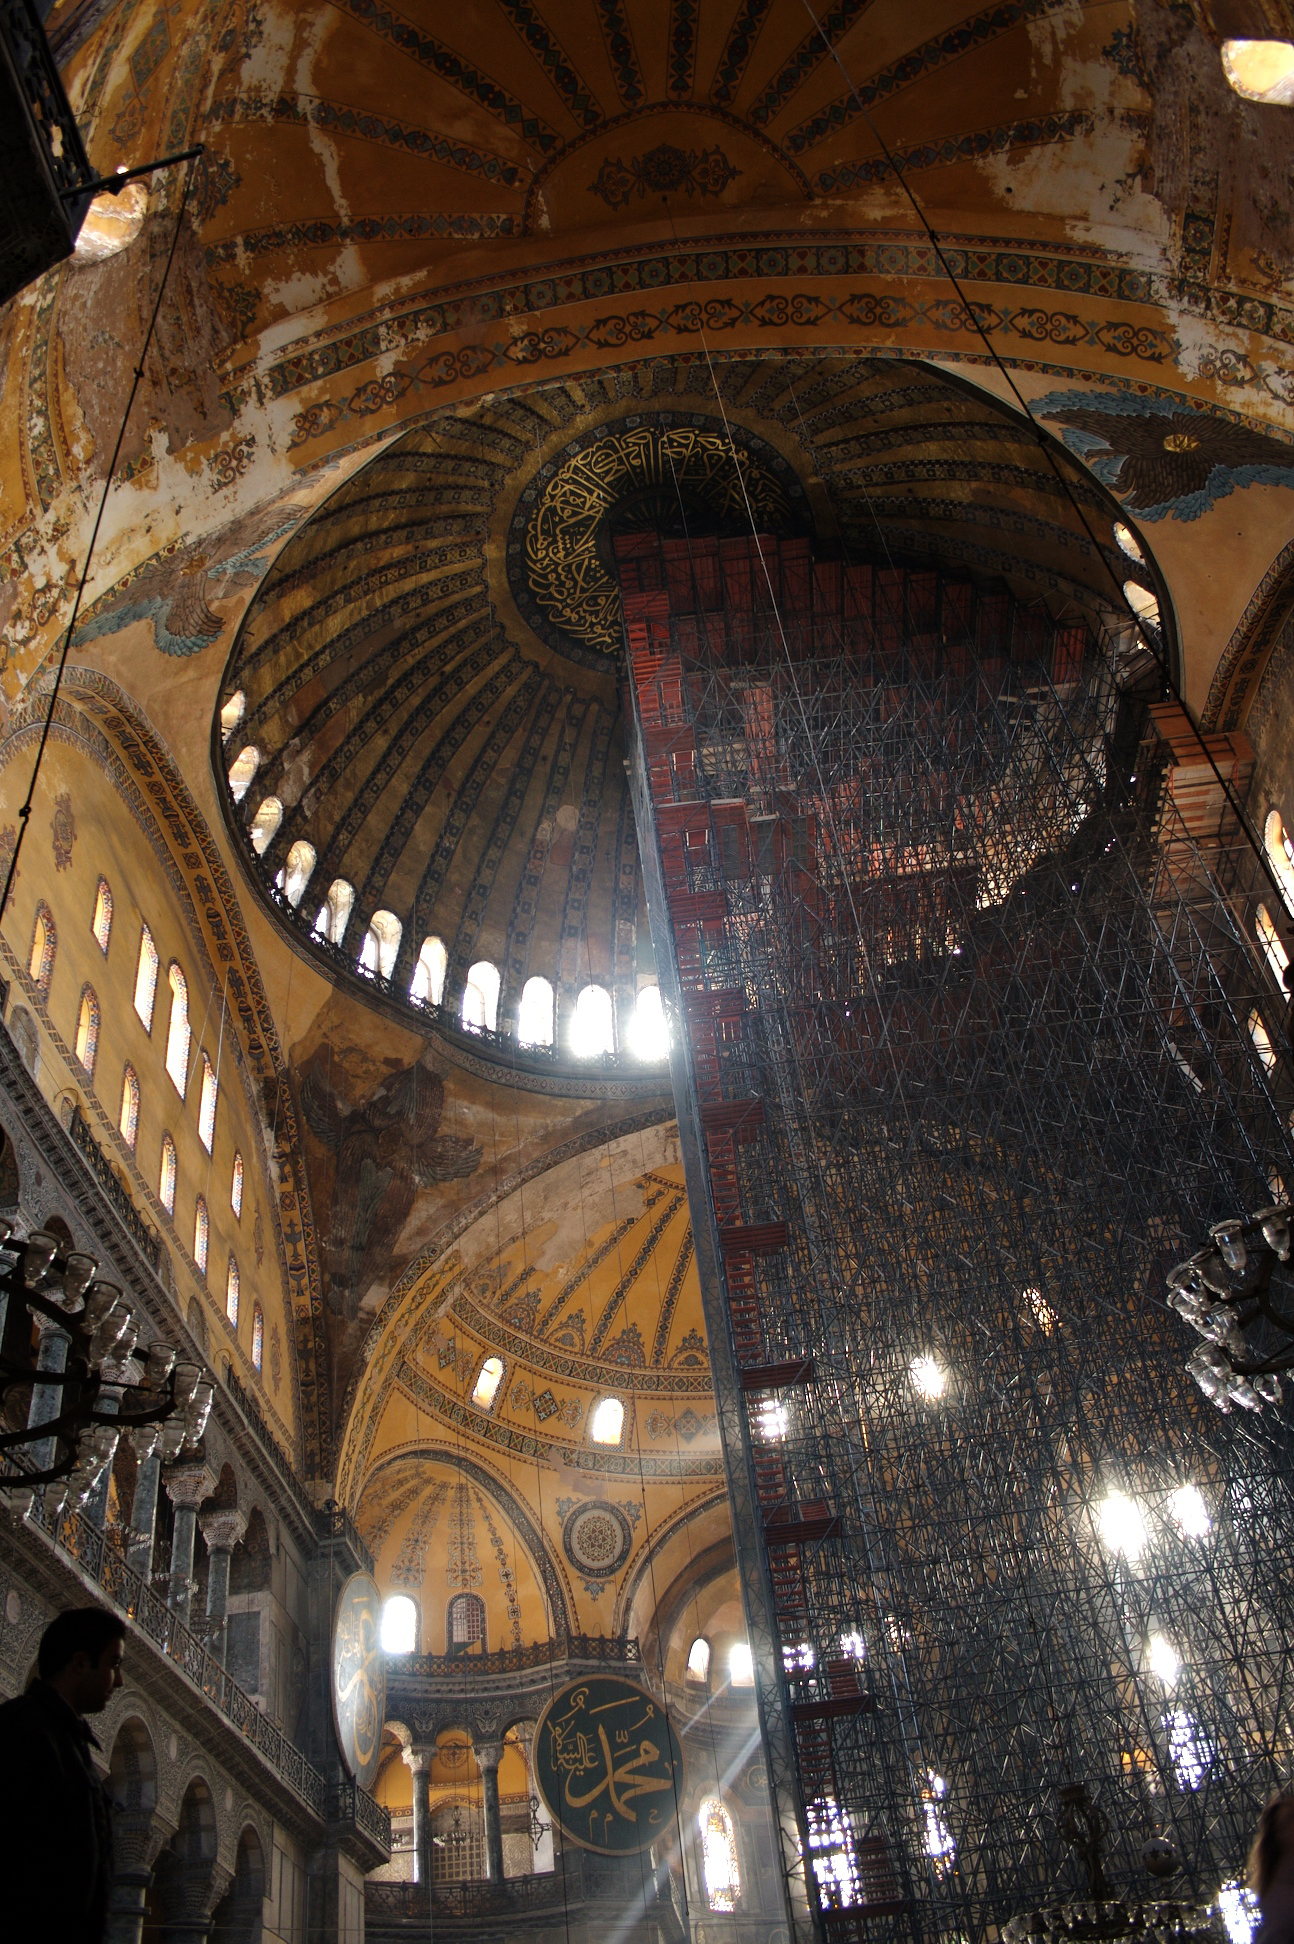 The interior of the dome undergoing restoration